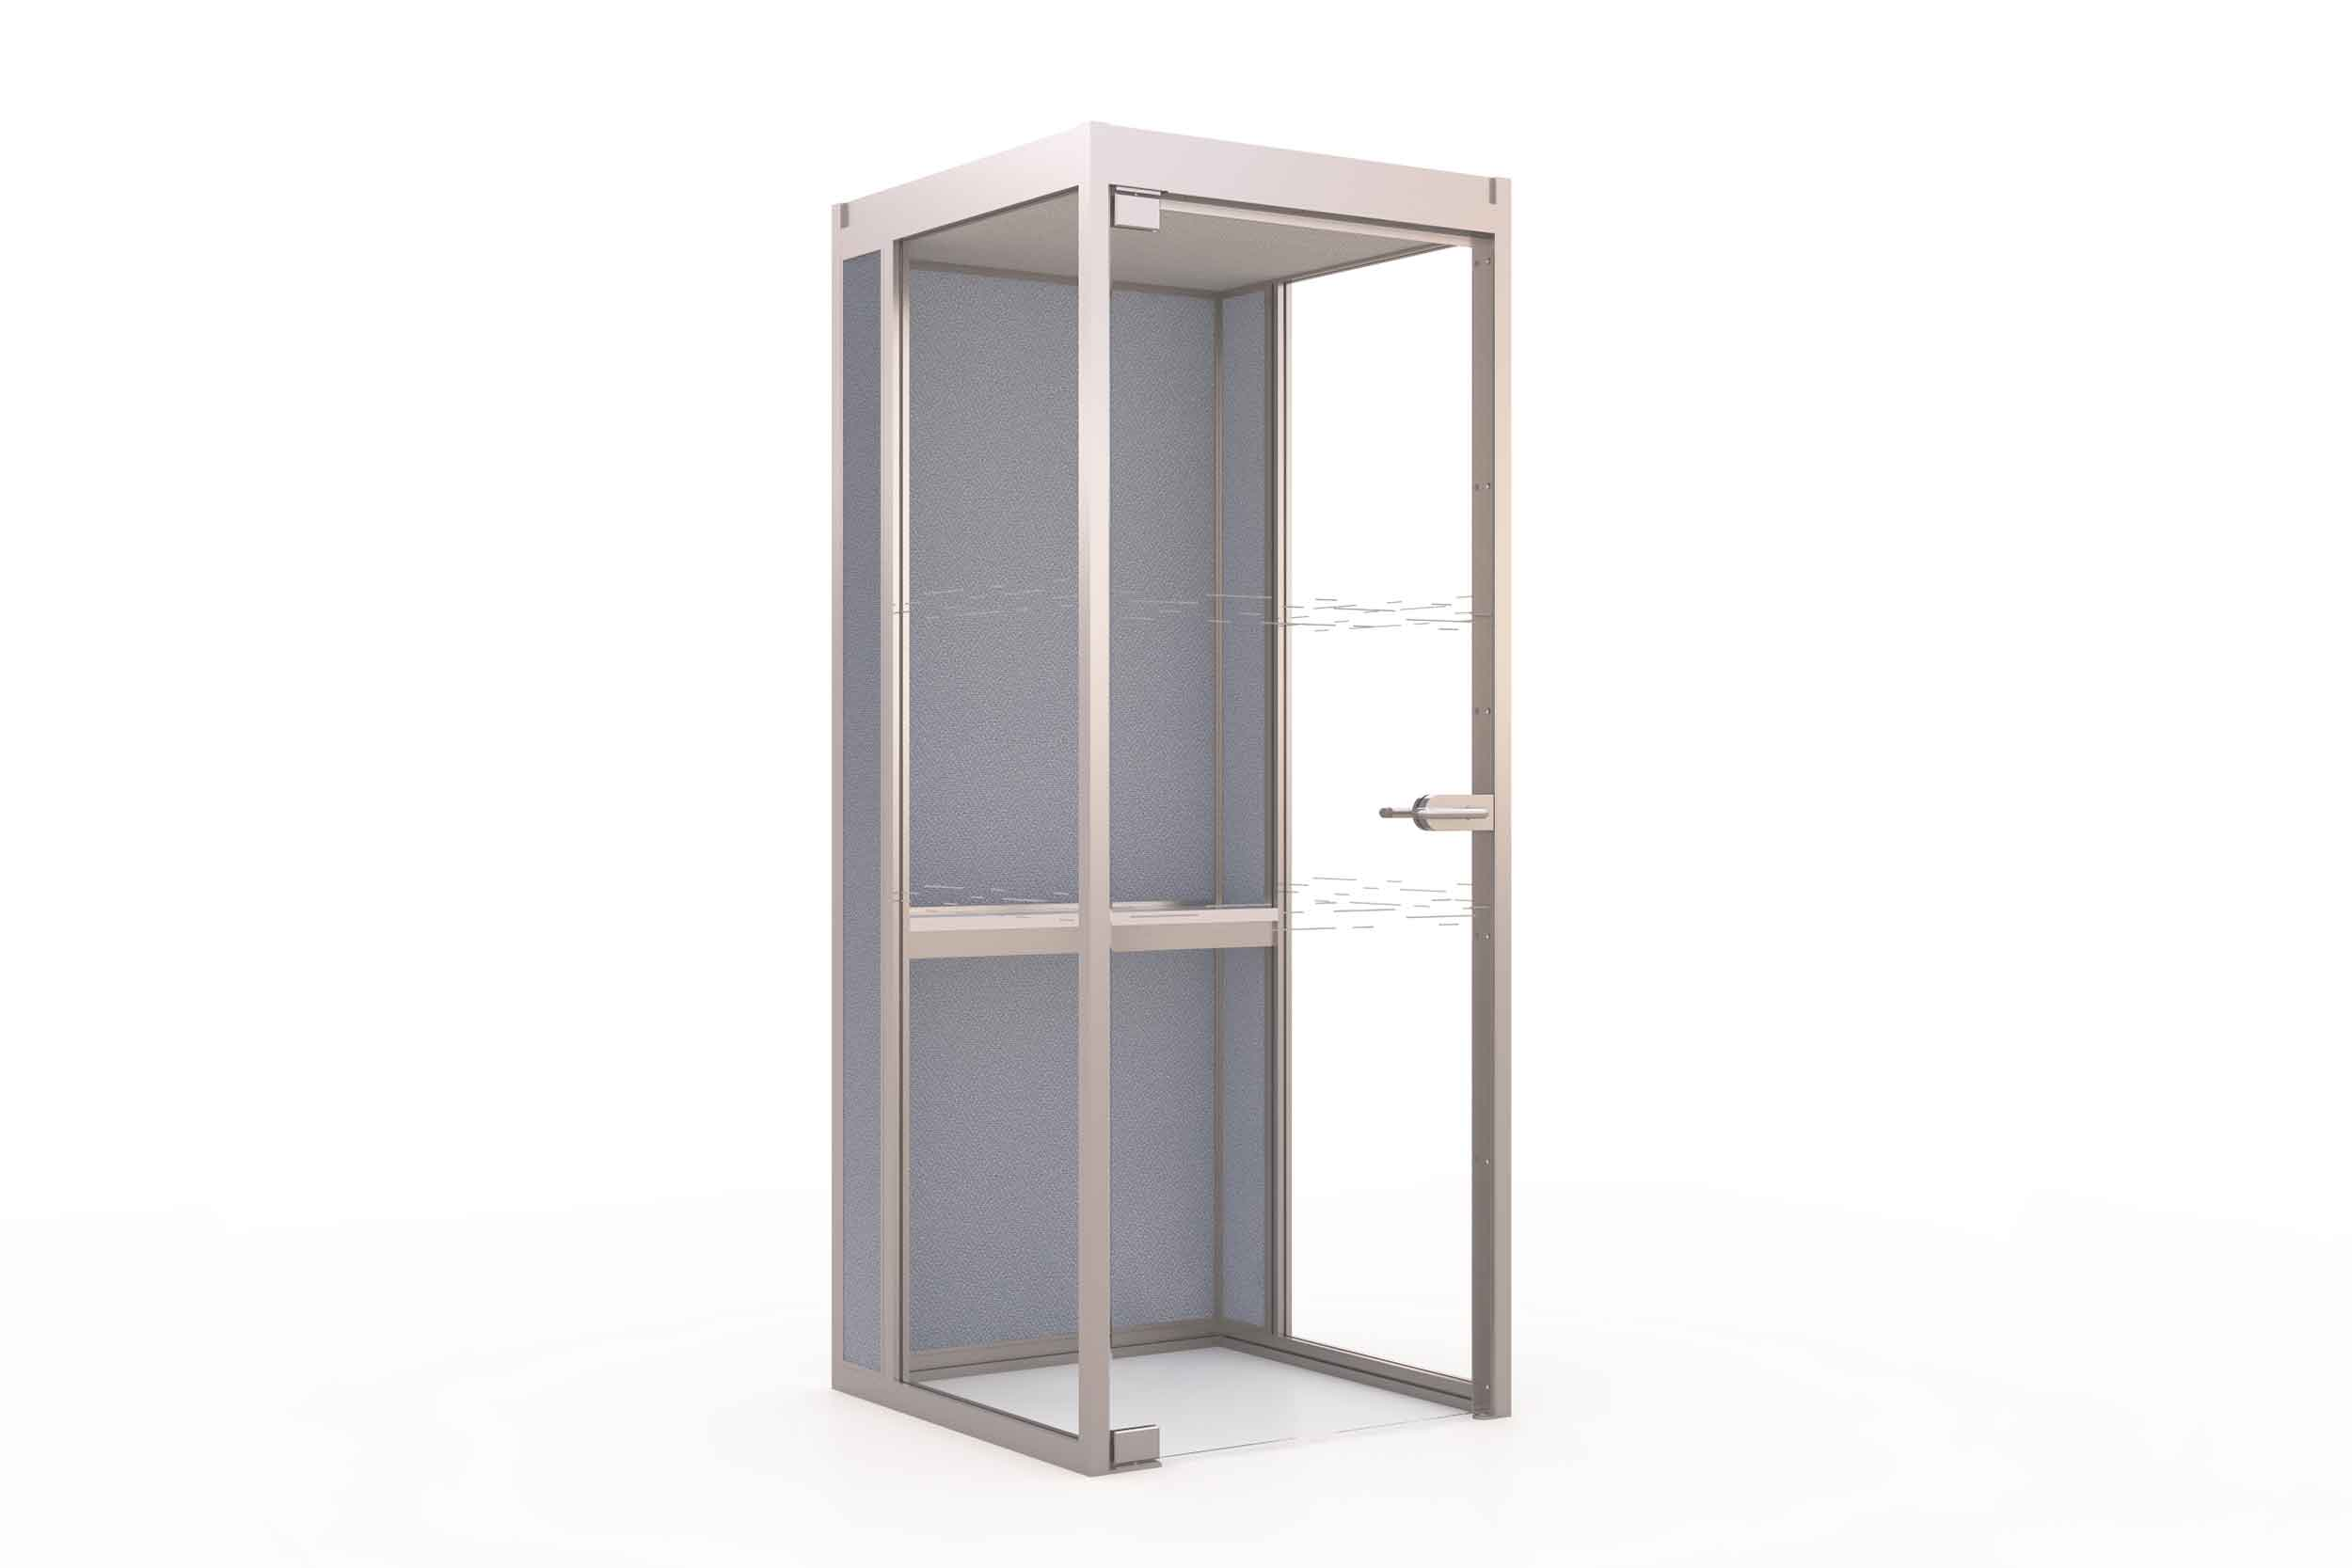 T2 Boss telephone booth perfect for office spaces